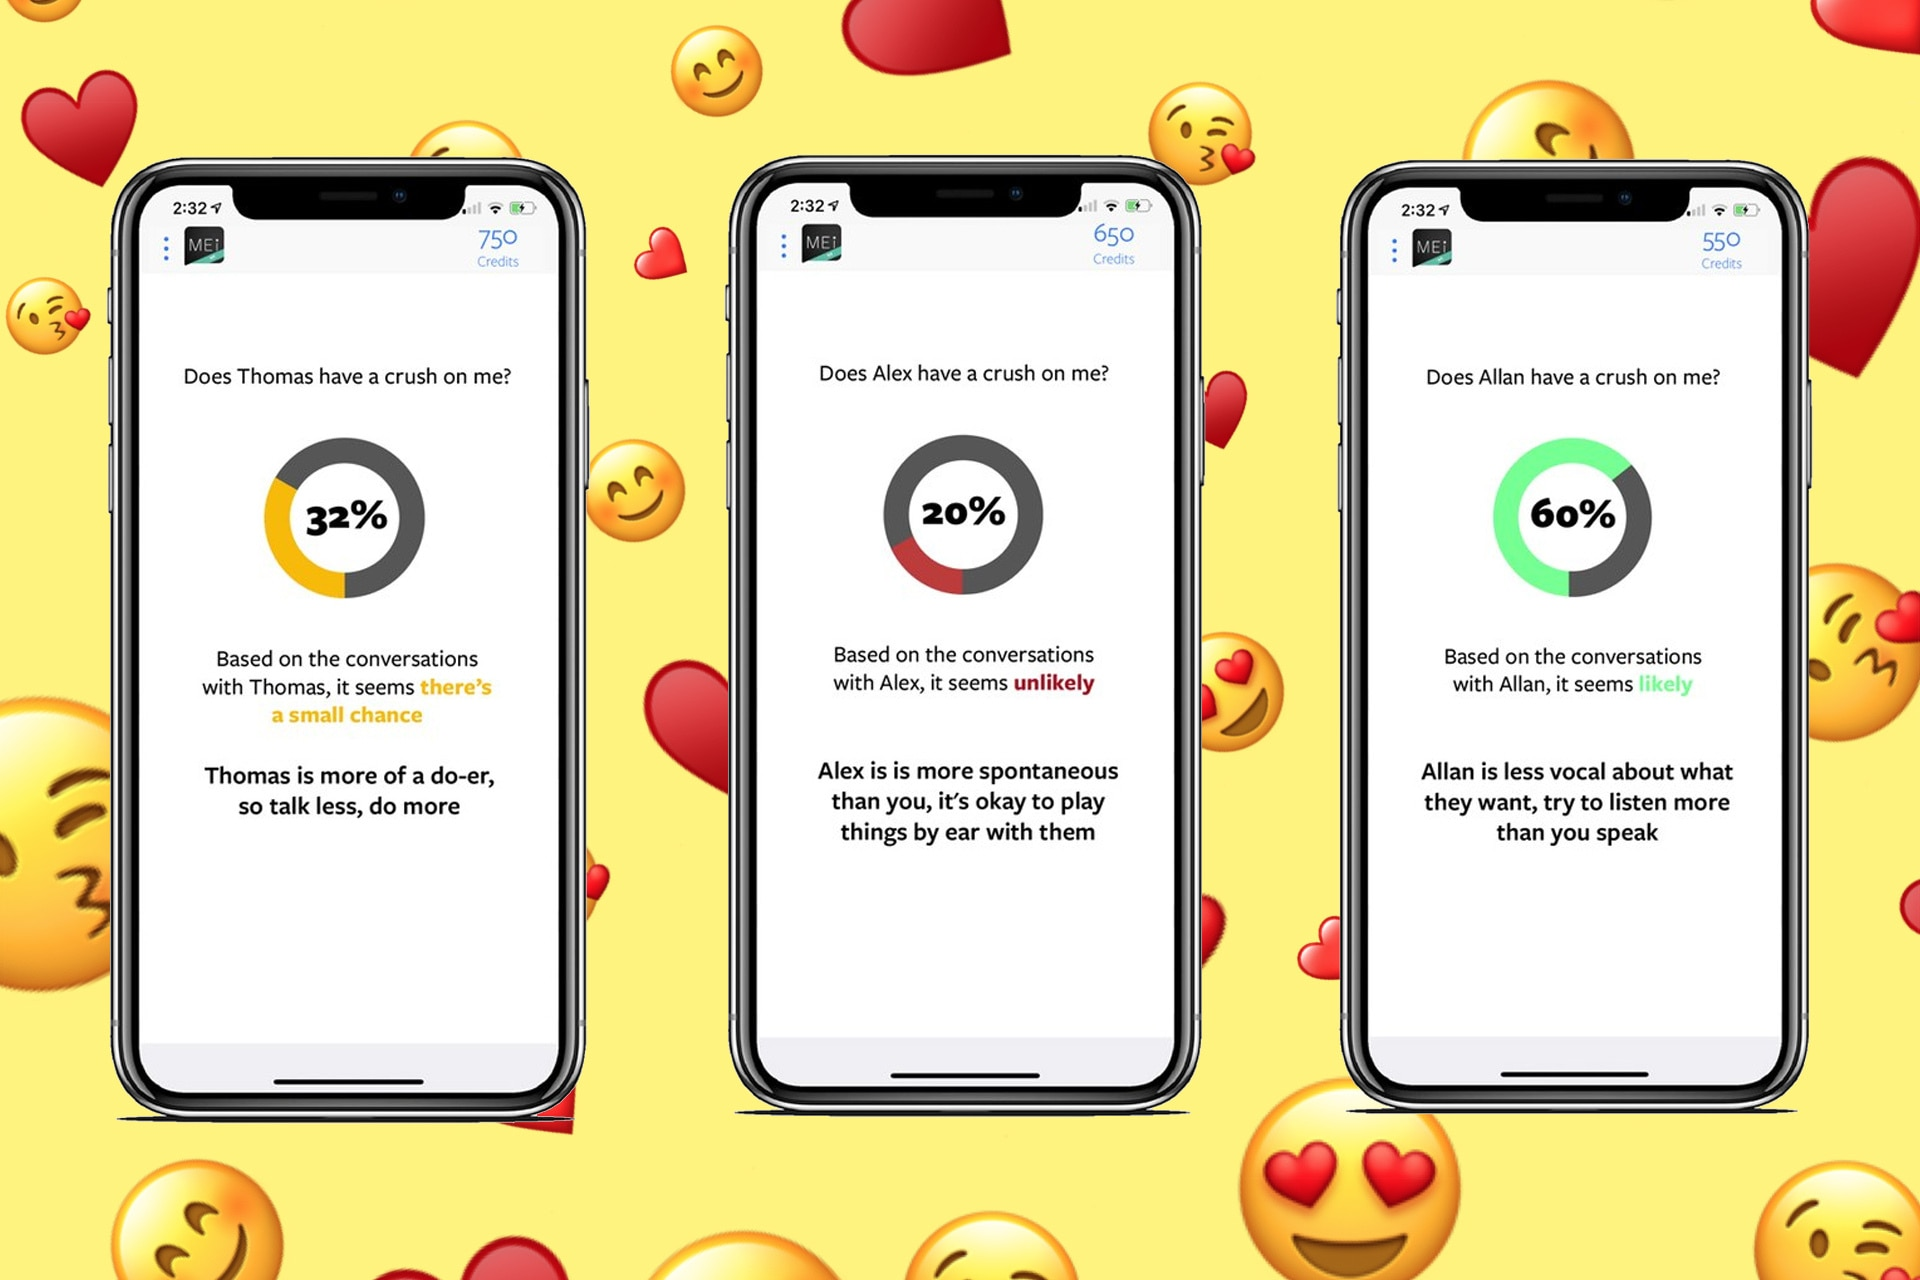 A New AI Will Scan Your Texts To Tell You If You've Been Friendzoned Or Not